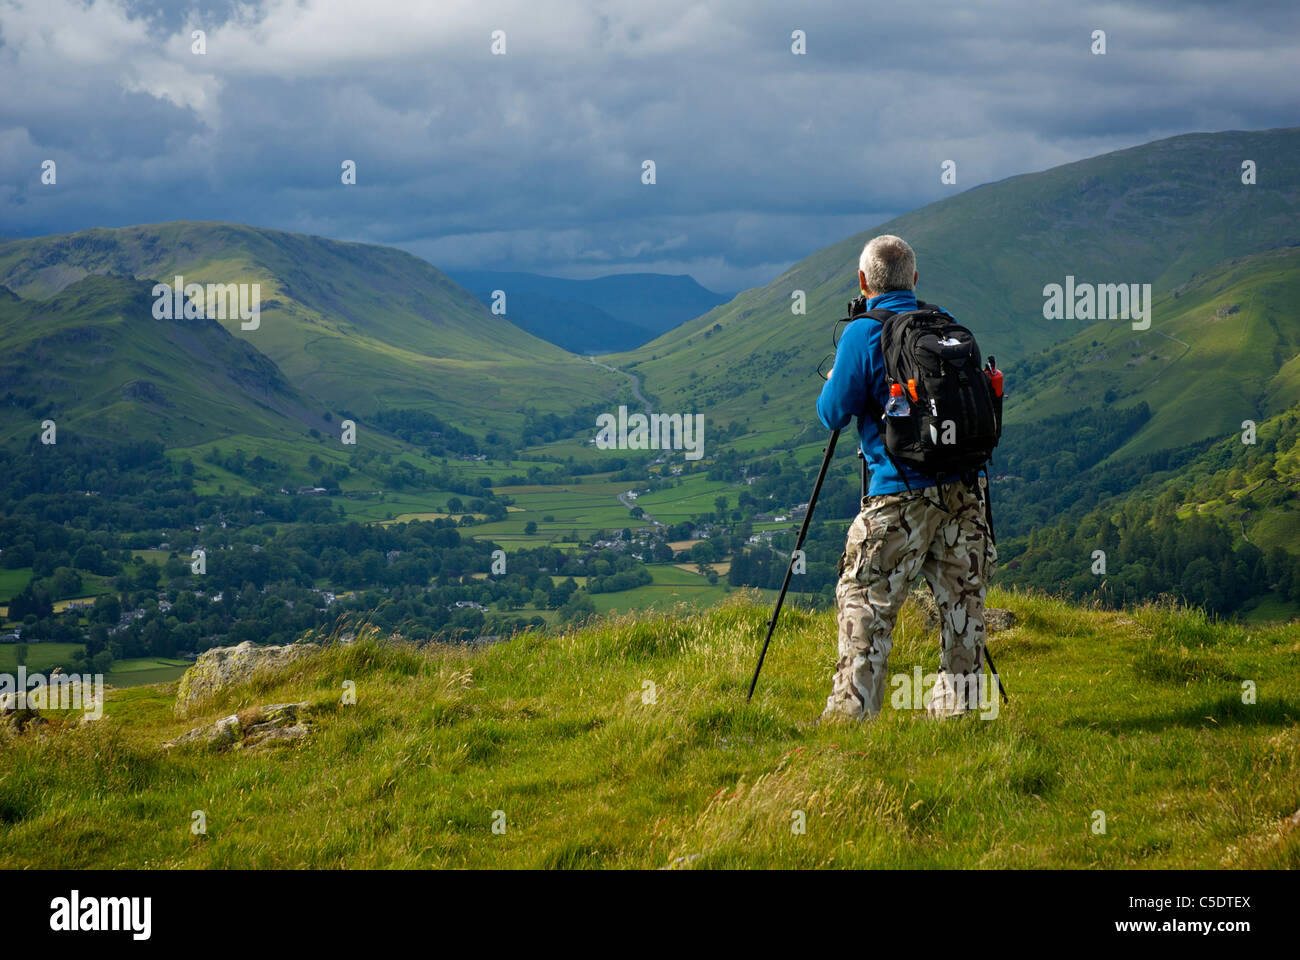 view-of-grasmere-village-helm-crag-and-dunmail-raise-from-the-viewpoint-C5DTEX.jpg